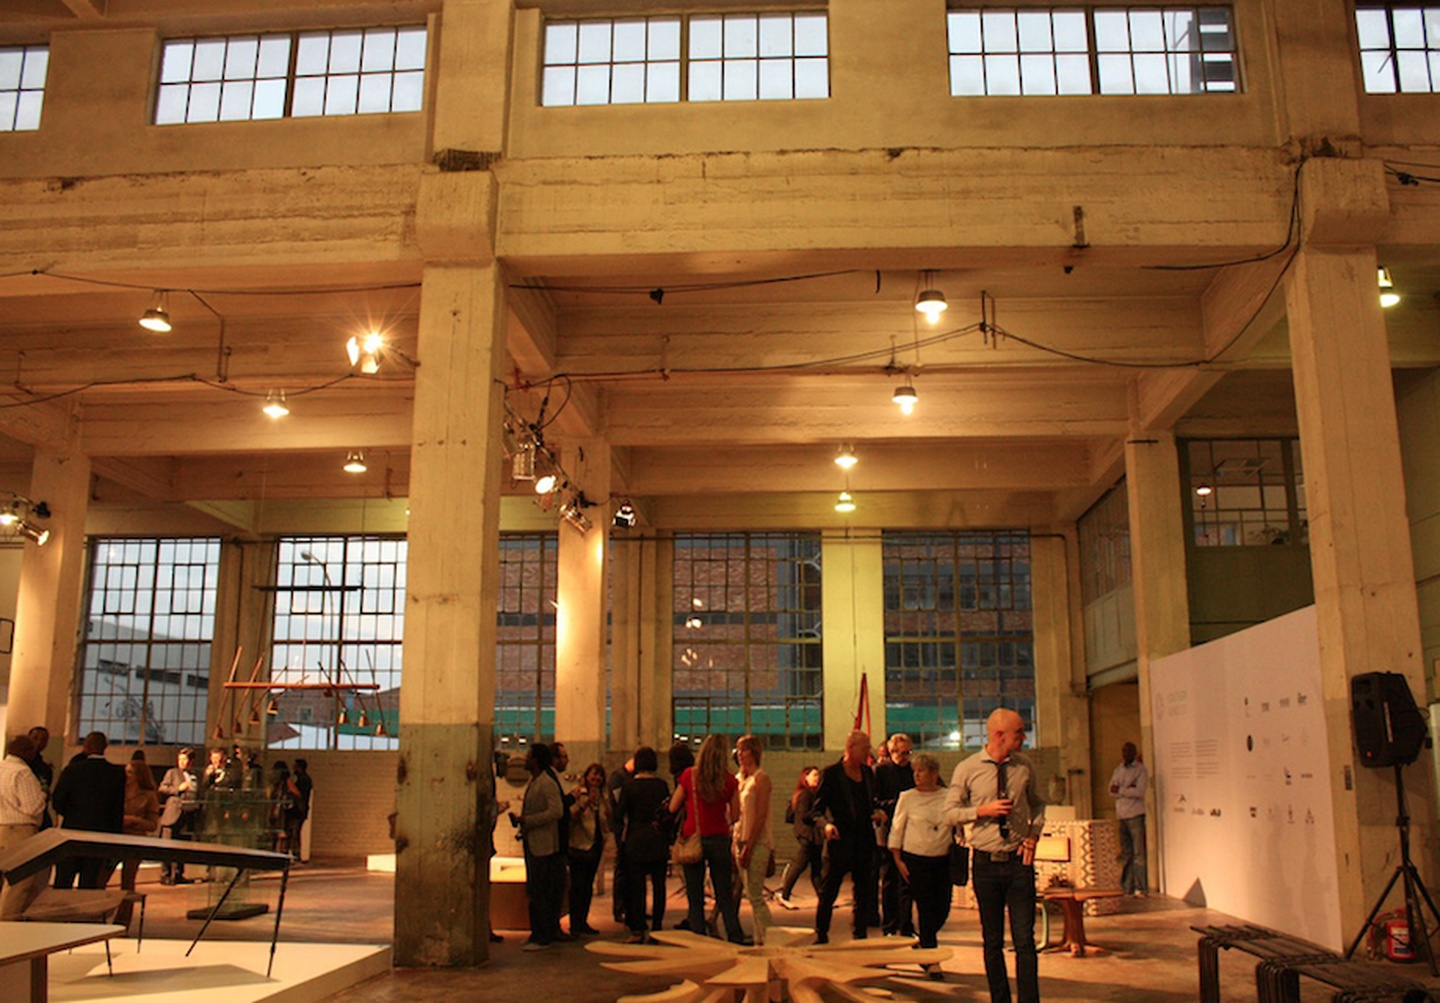 Johannesburg corporate event venues Gallery Museum of African Design image 0